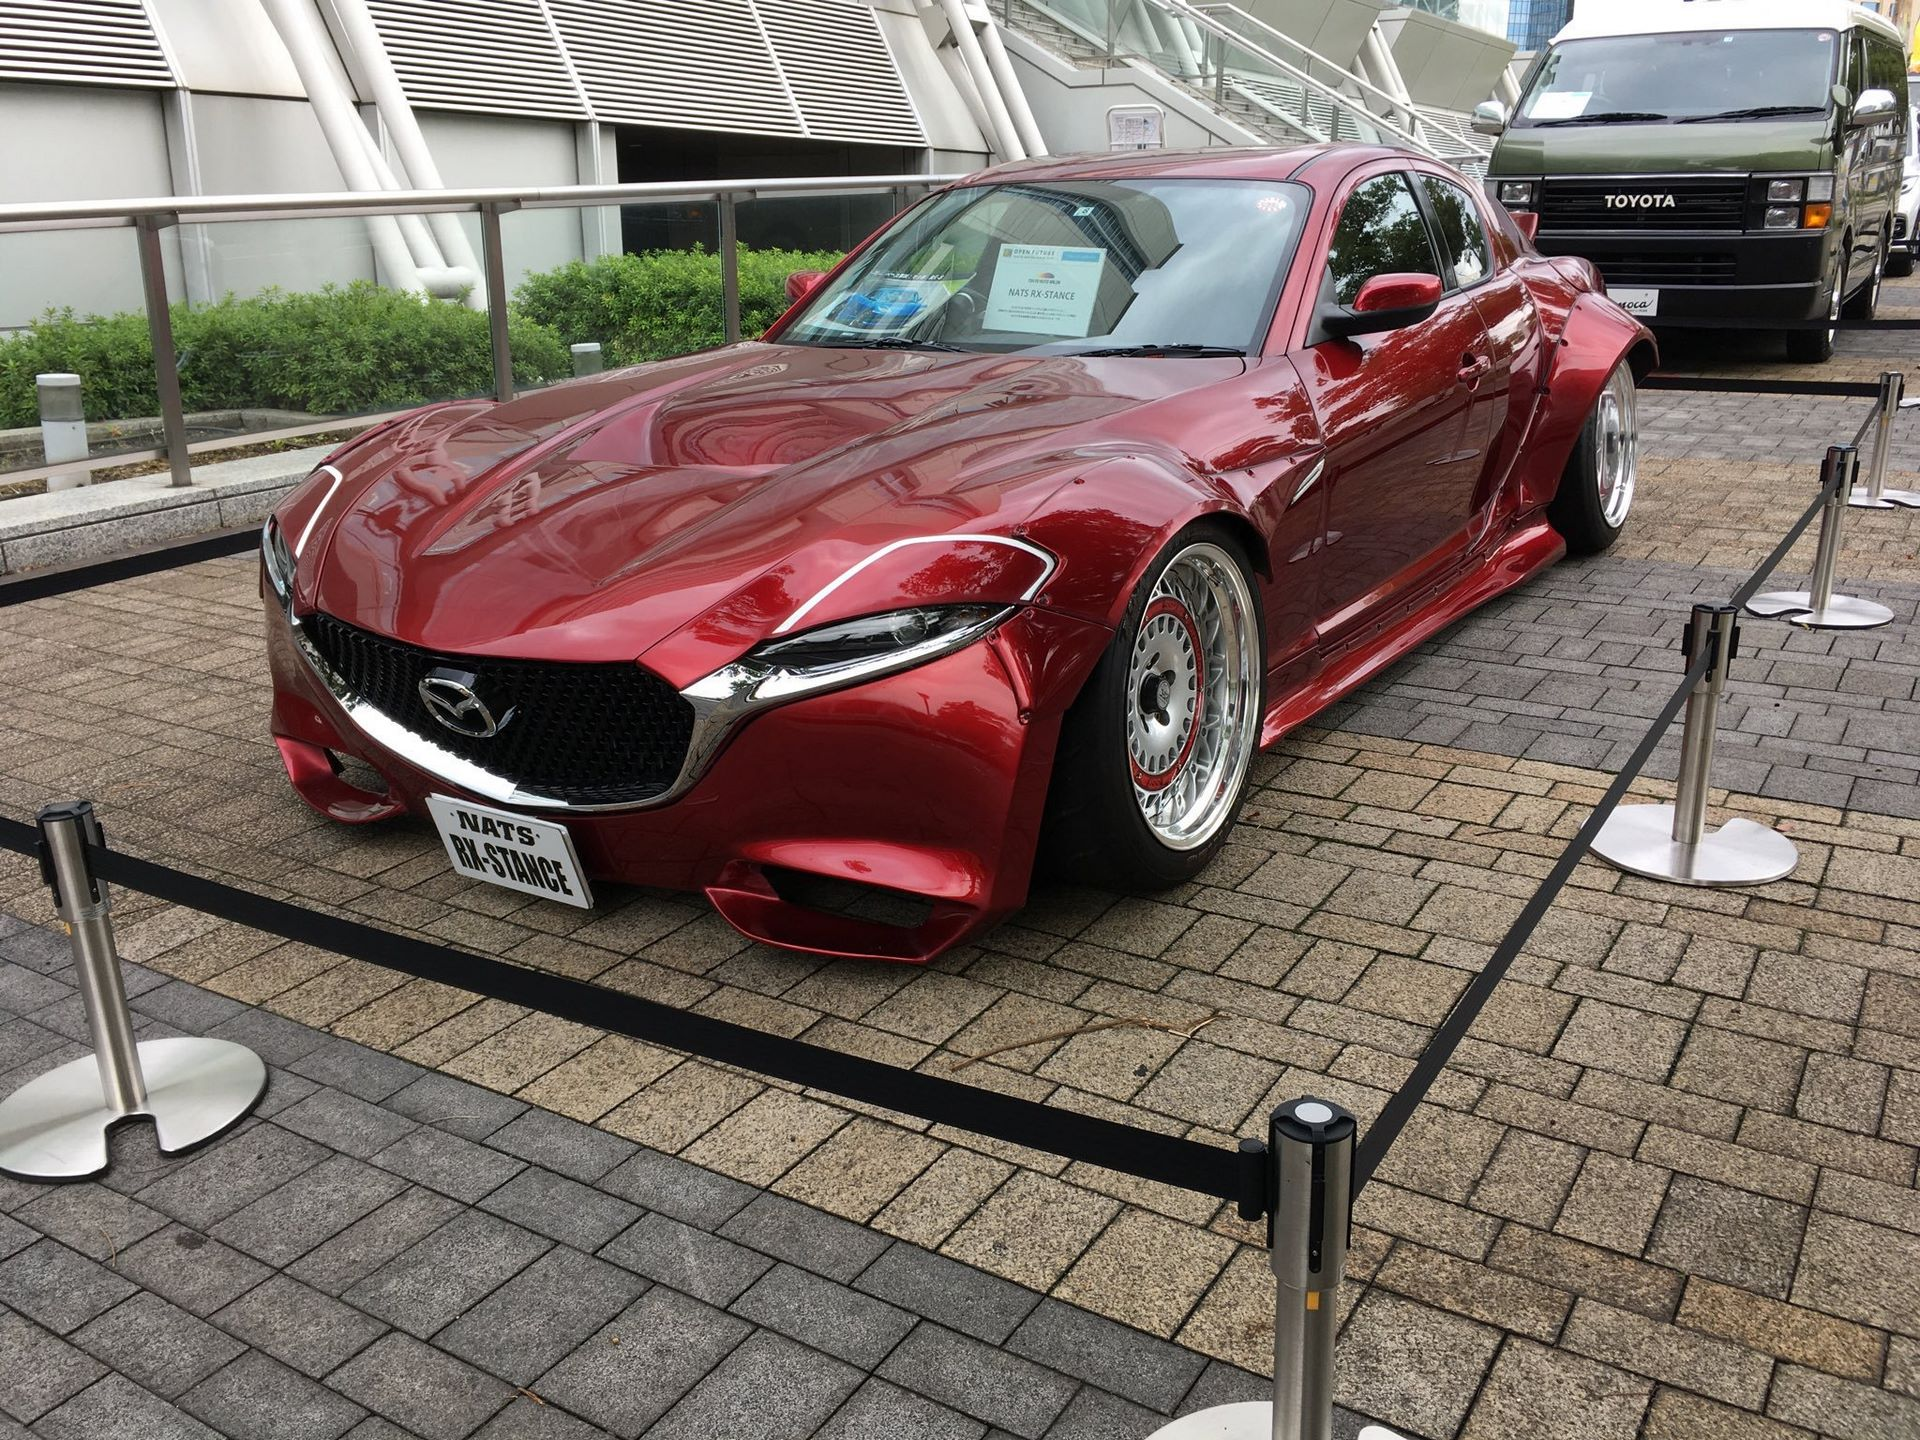 Mazda-RX-8-with-RX-Vision-concept-bodykit-1